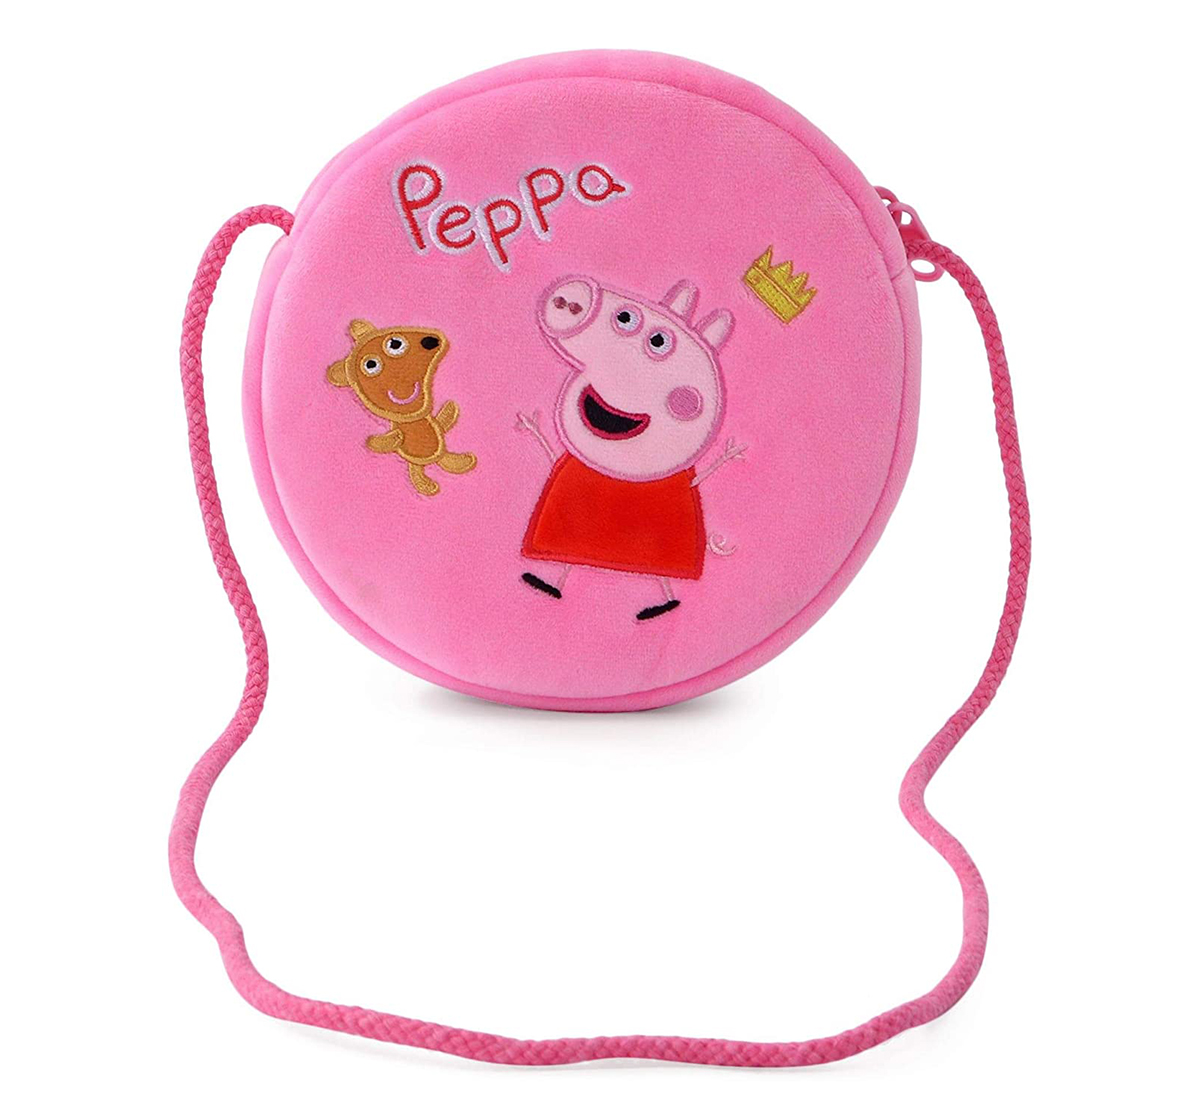 Peppa Pig | Peppa Pig with Bear Round Sling Bag Plush Accessory for Girls age 3Y+ - 16 Cm (Pink)